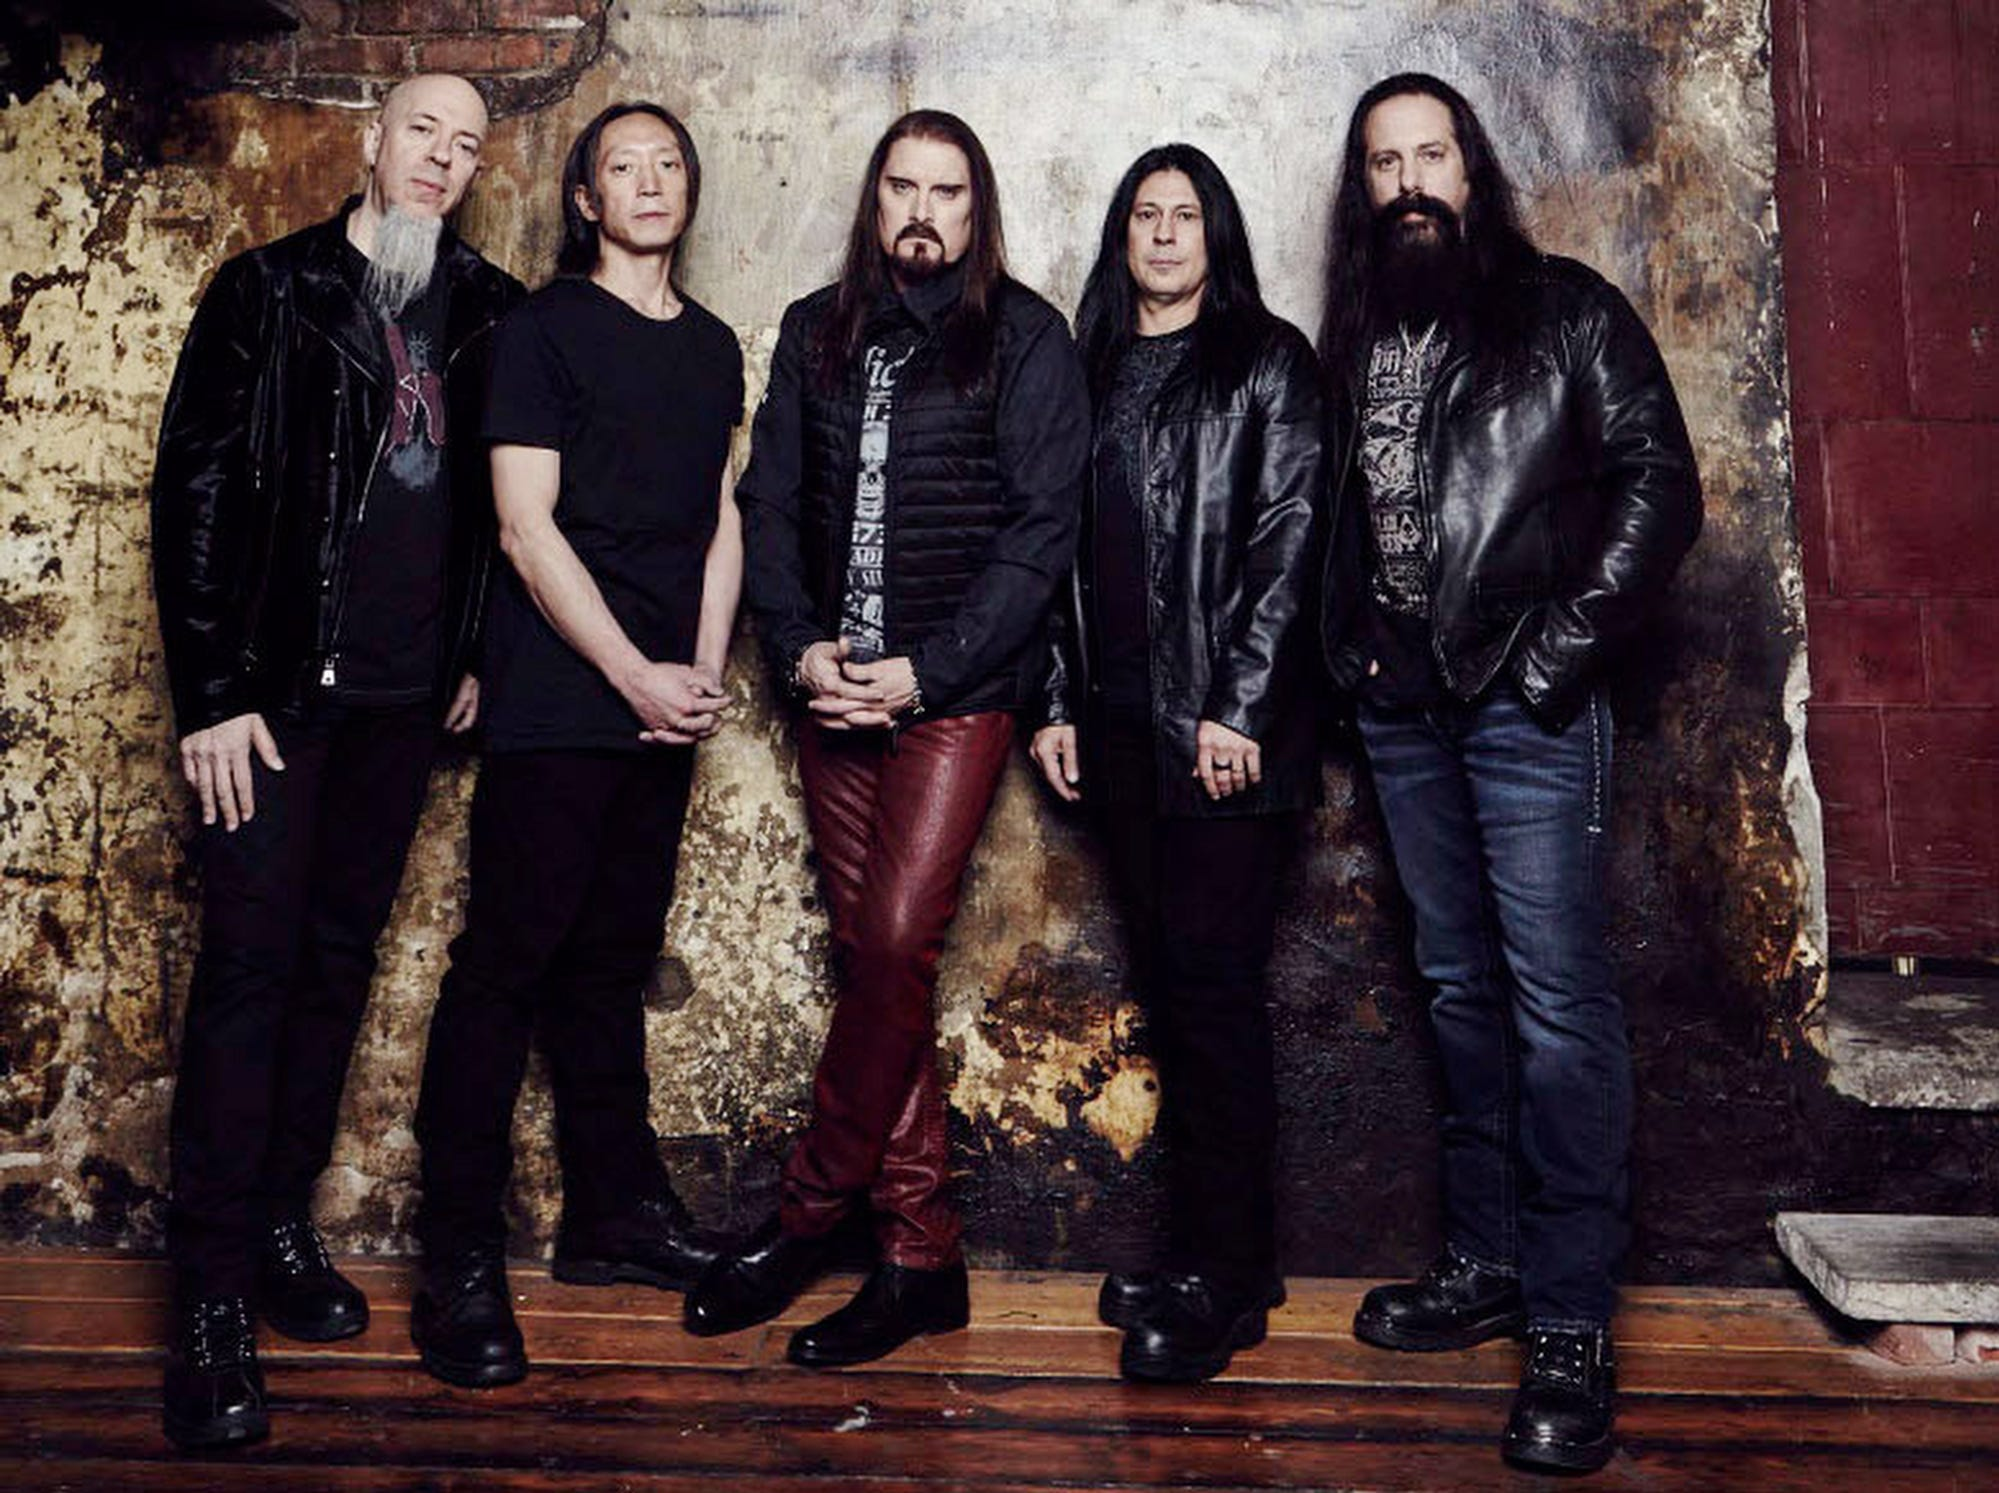 April 17DREAM THEATER: 7:30 p.m. Tennessee Performing Arts Center, $39.50-$49.50, tpac.org